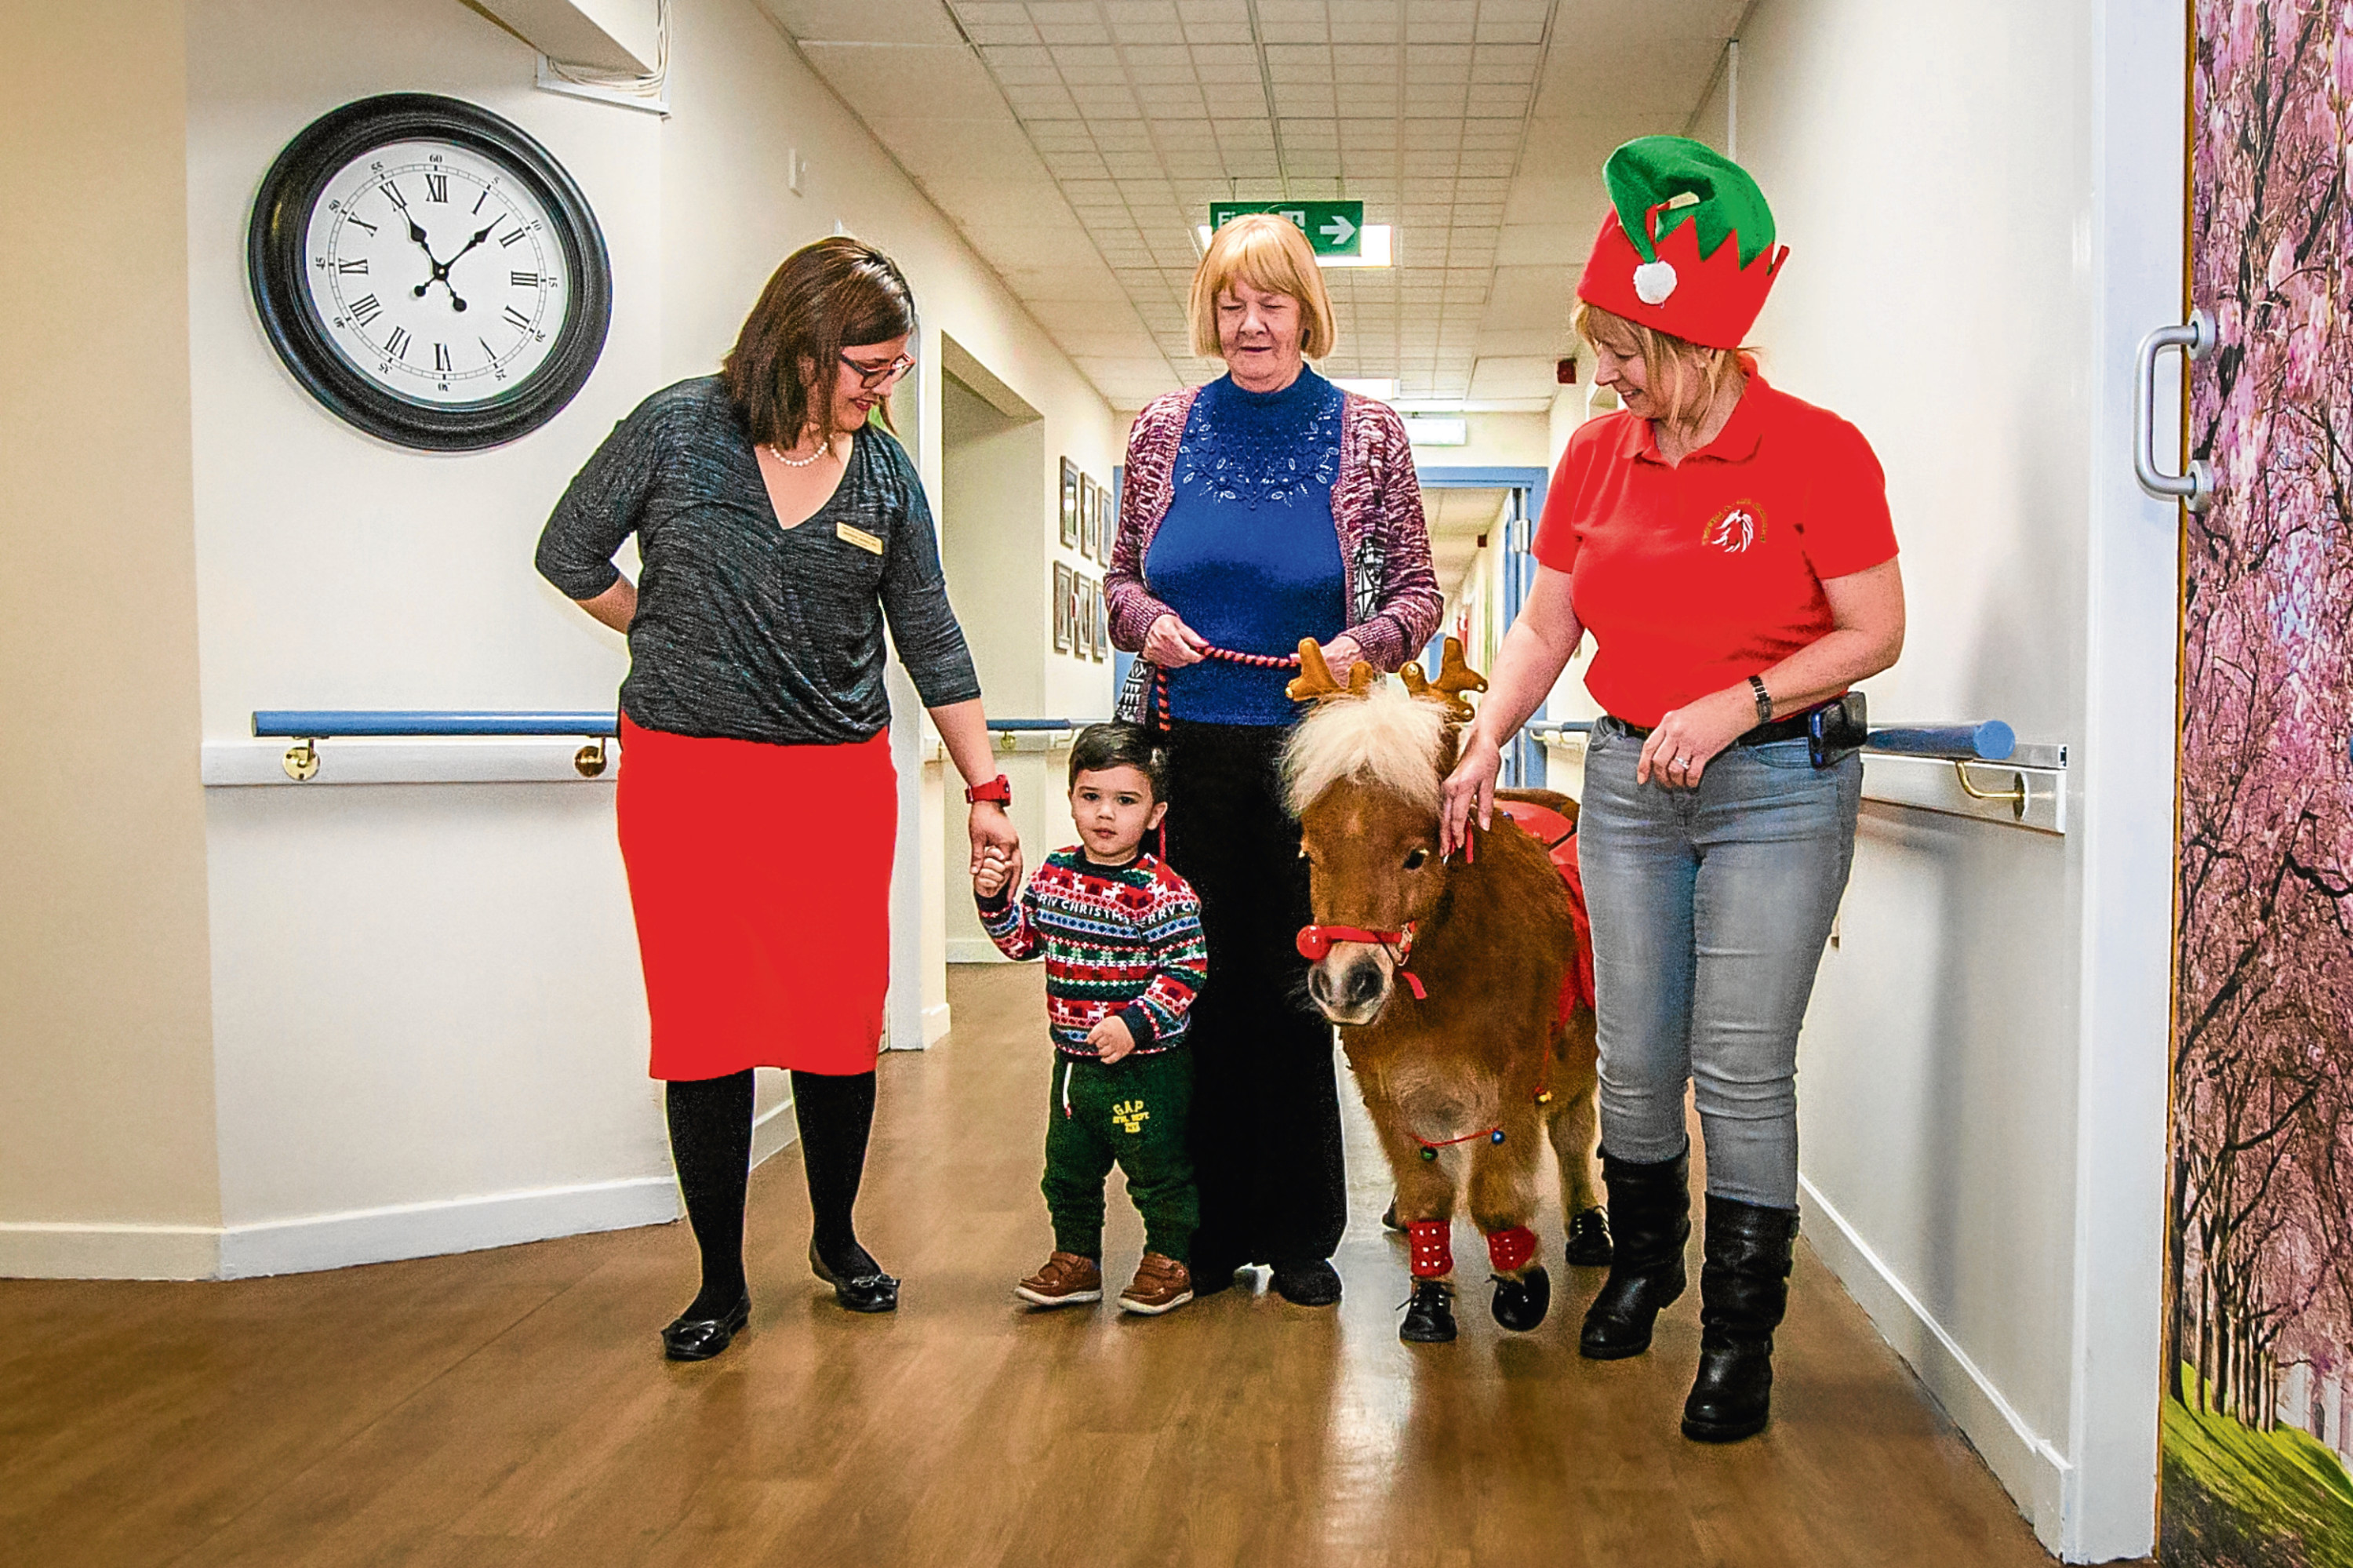 From left, Jasmine with her son Christopher, 18 months, resident Roberta Alexander, 70, and Elaine Sangster with Flicker the pony